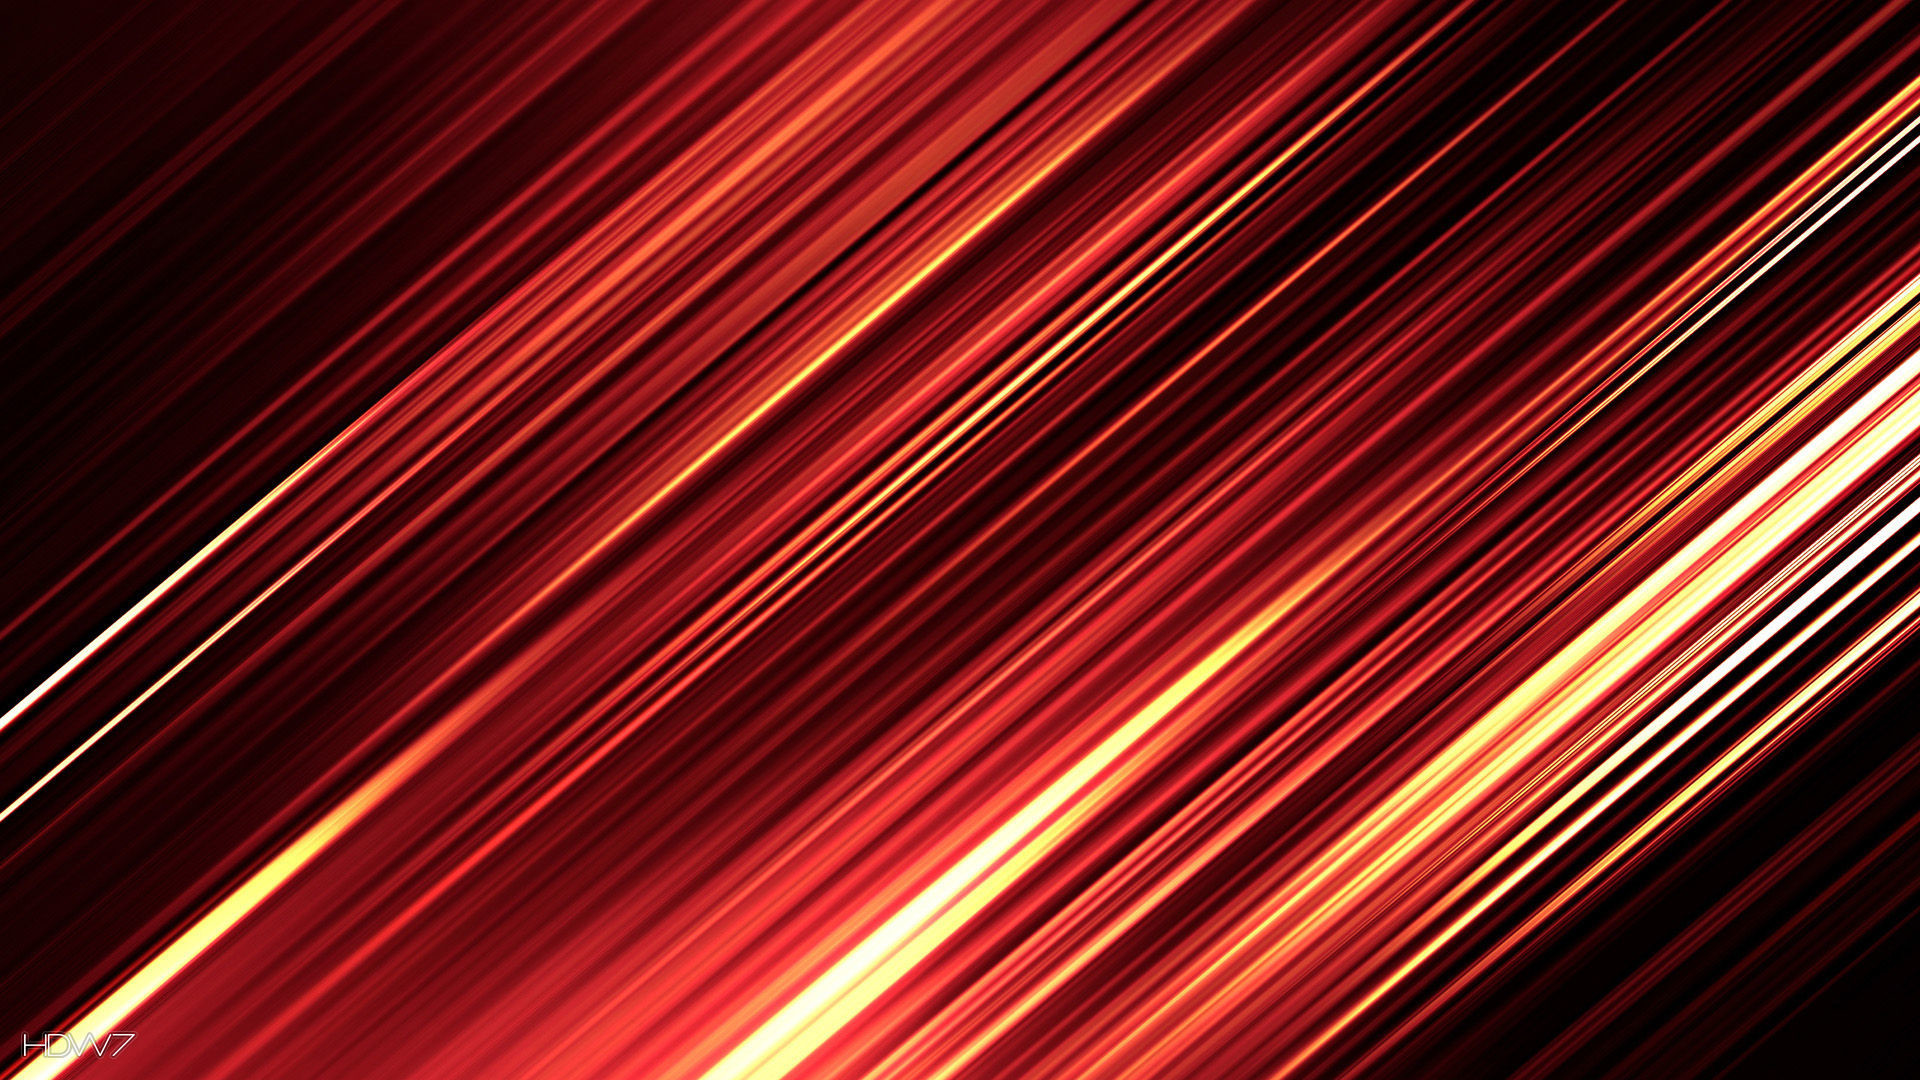 abstract metal texture wallpaper 1920×1080